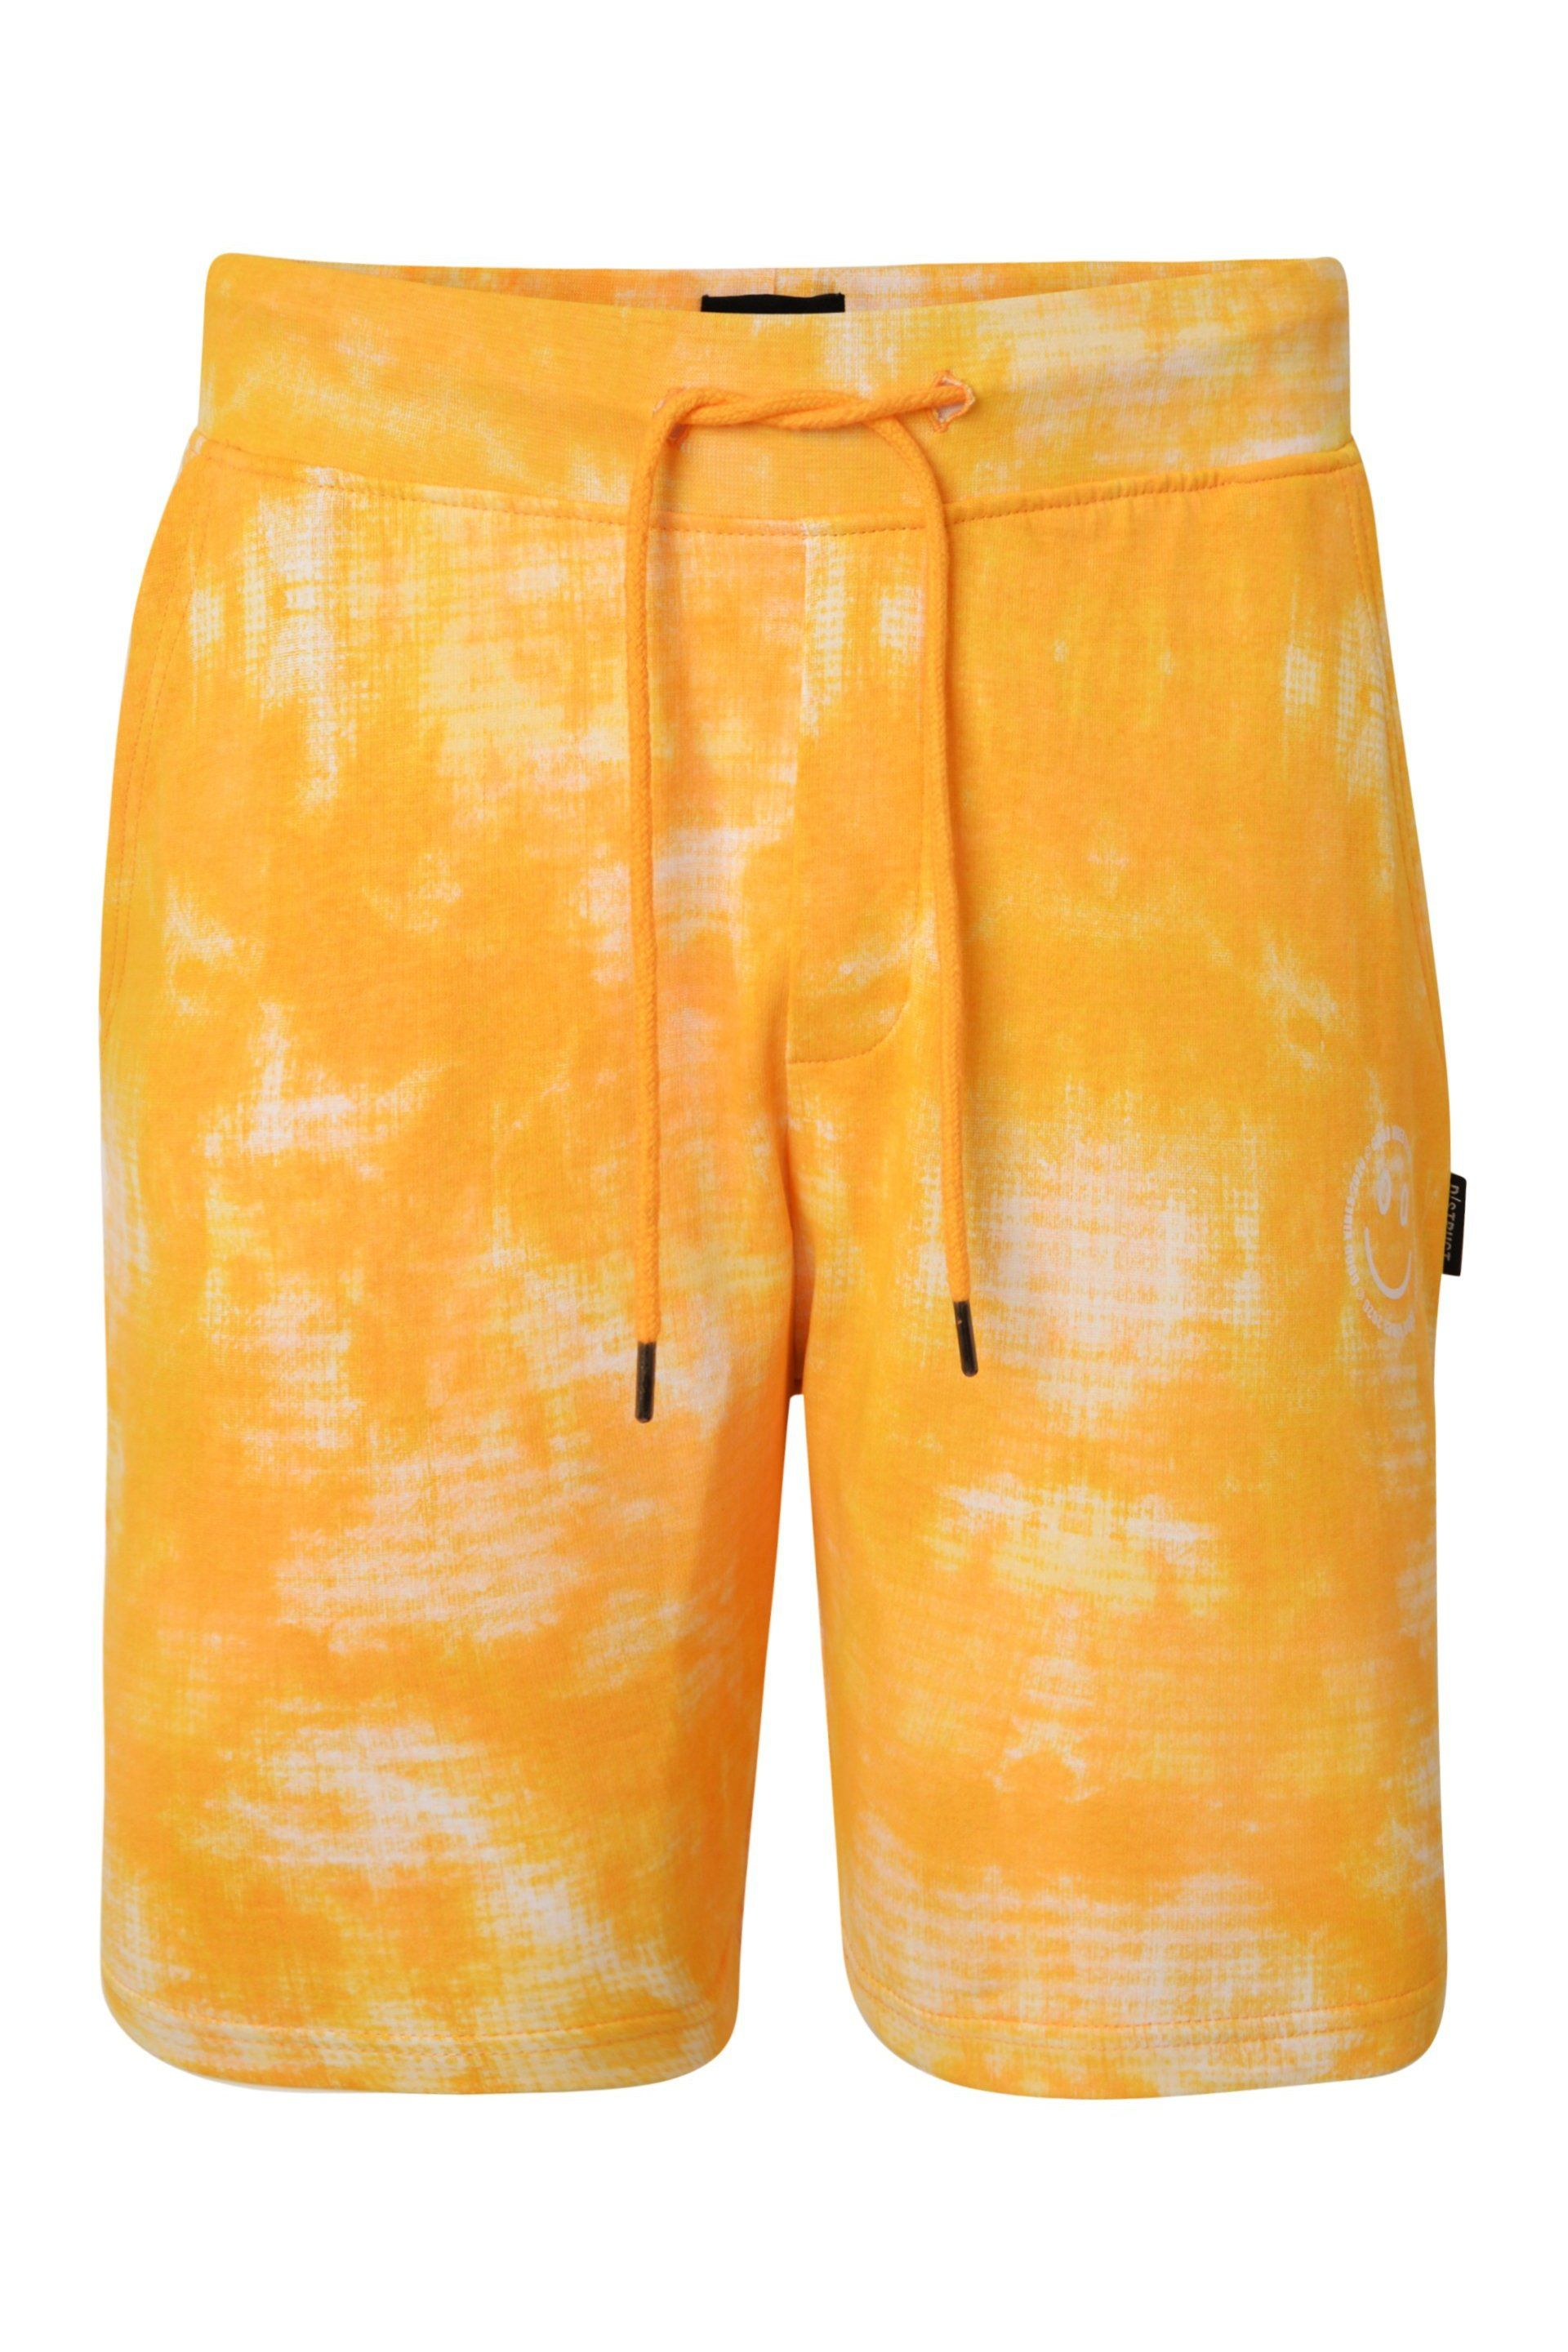 T-Shirts - Tie Dye Shorts Yellow